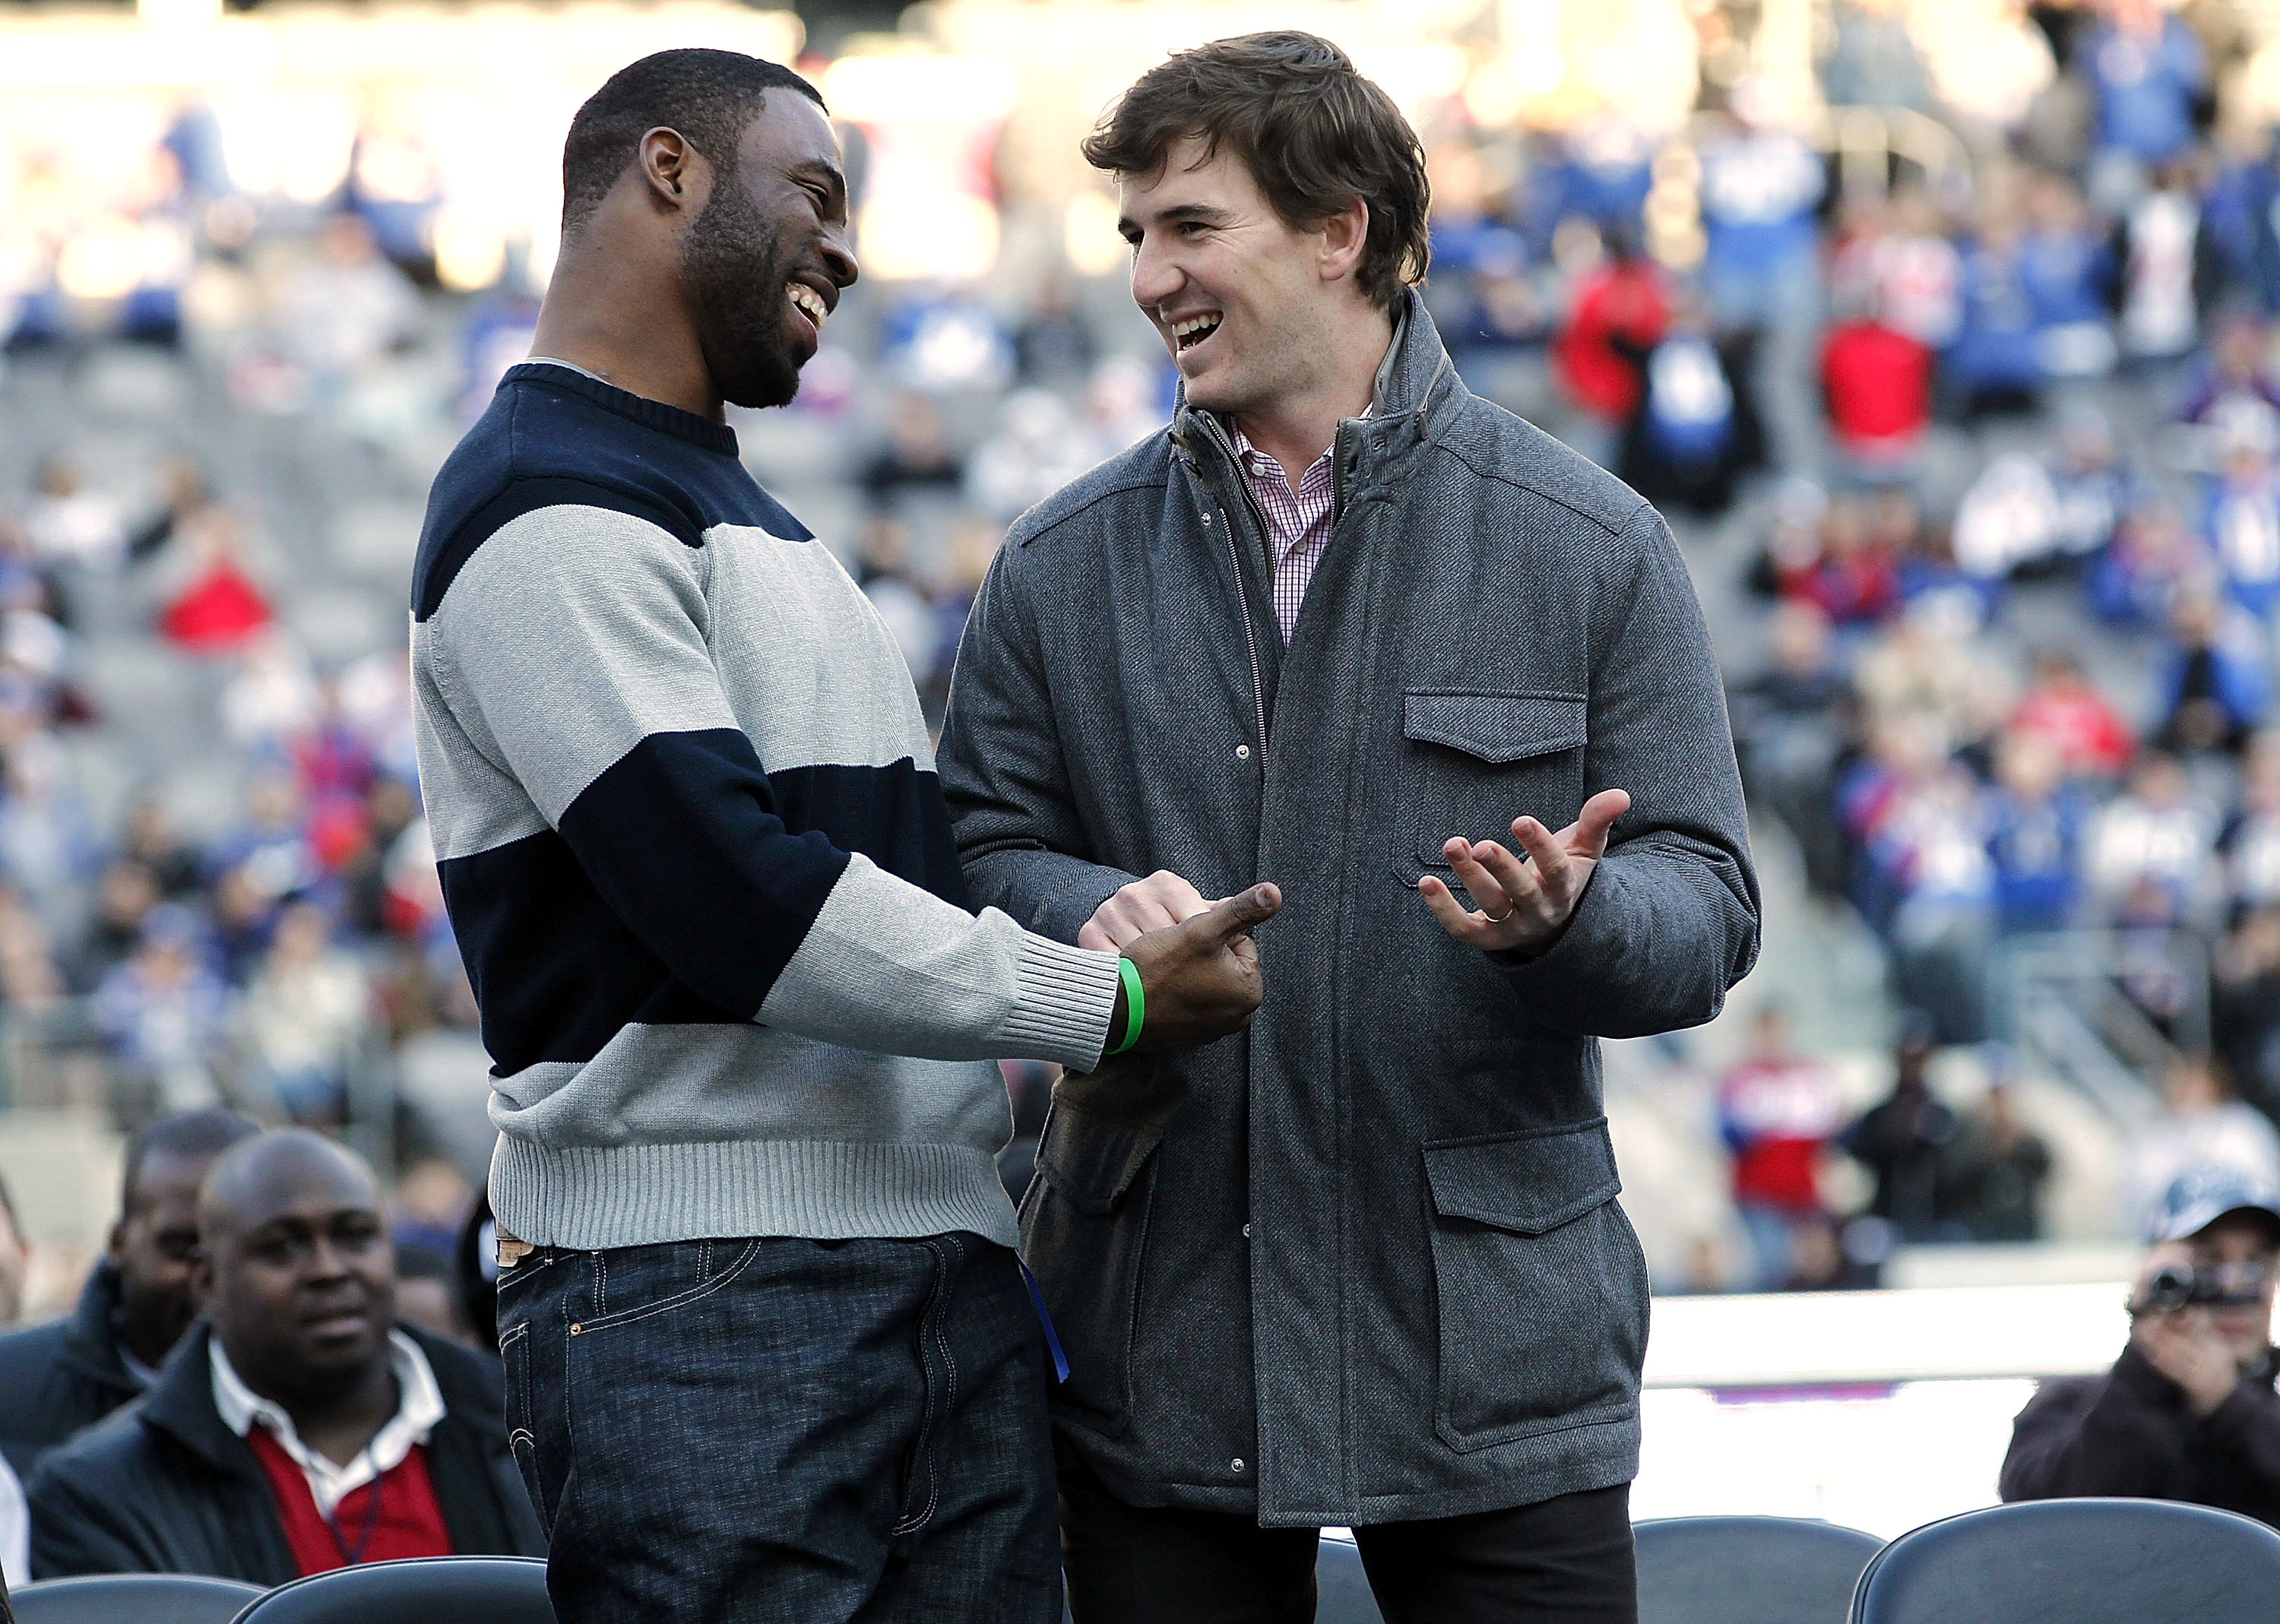 Justin Tuck (L) laughs with teammate Eli Manning at a rally to celebrate the New York Giants' event